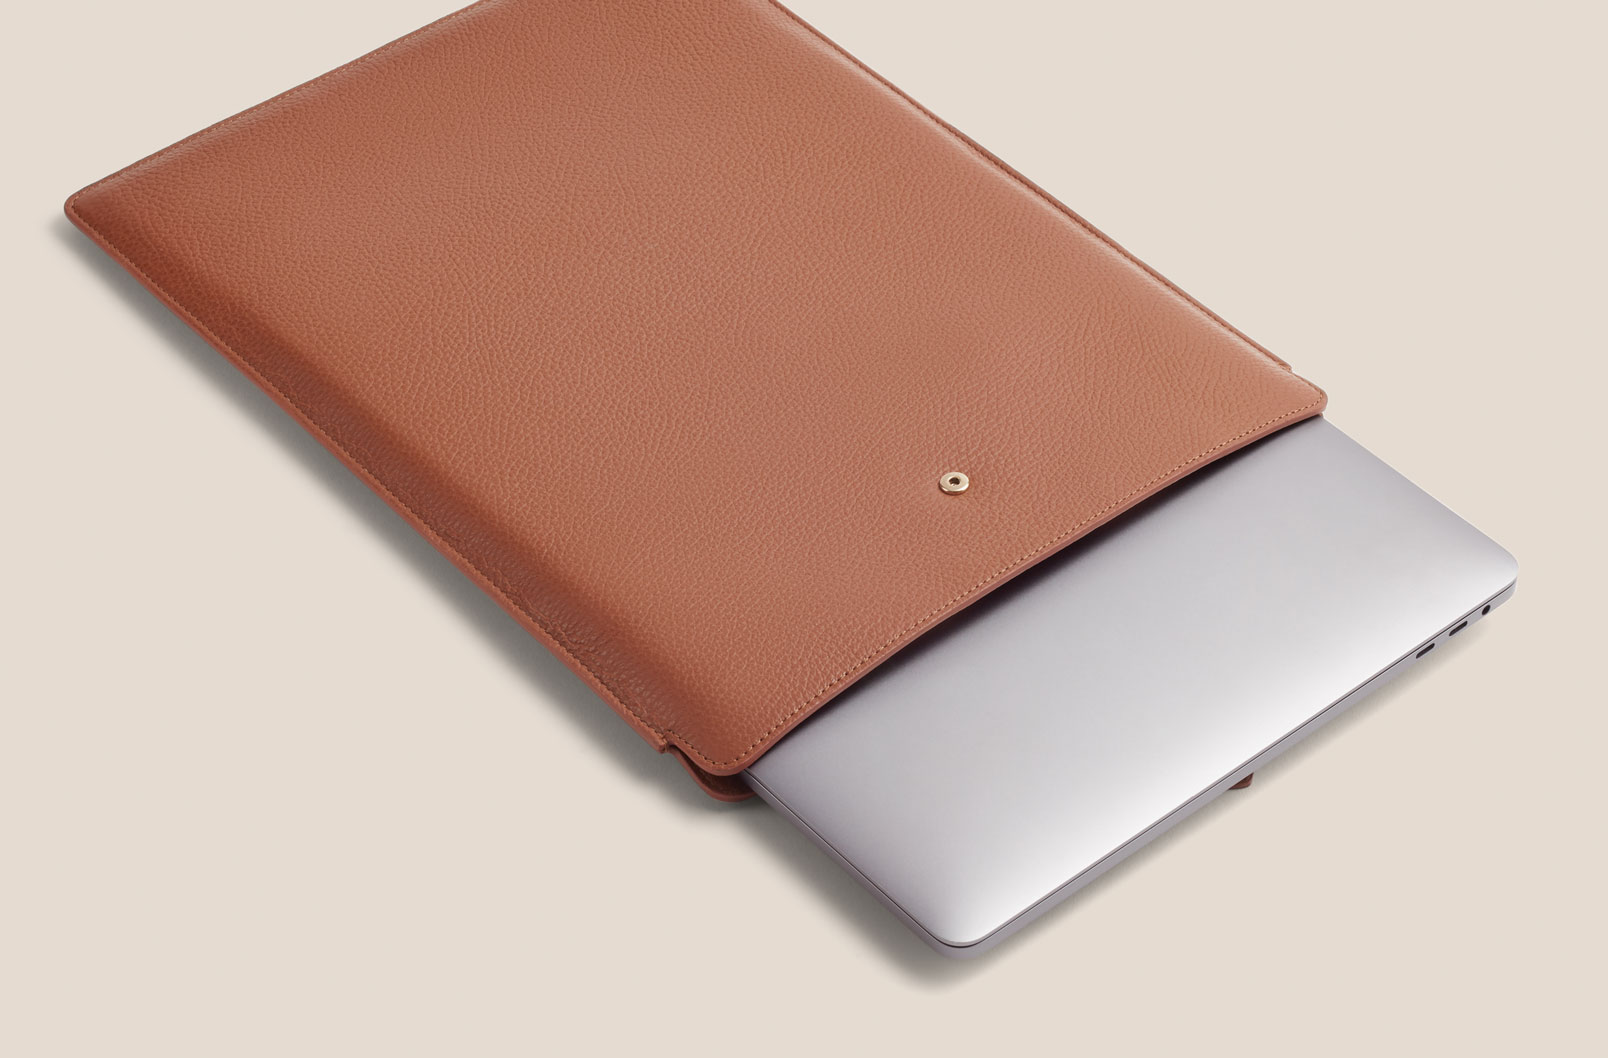 Cuyana Leather Laptop Sleeve in Caramel with Apple Macbook Pro